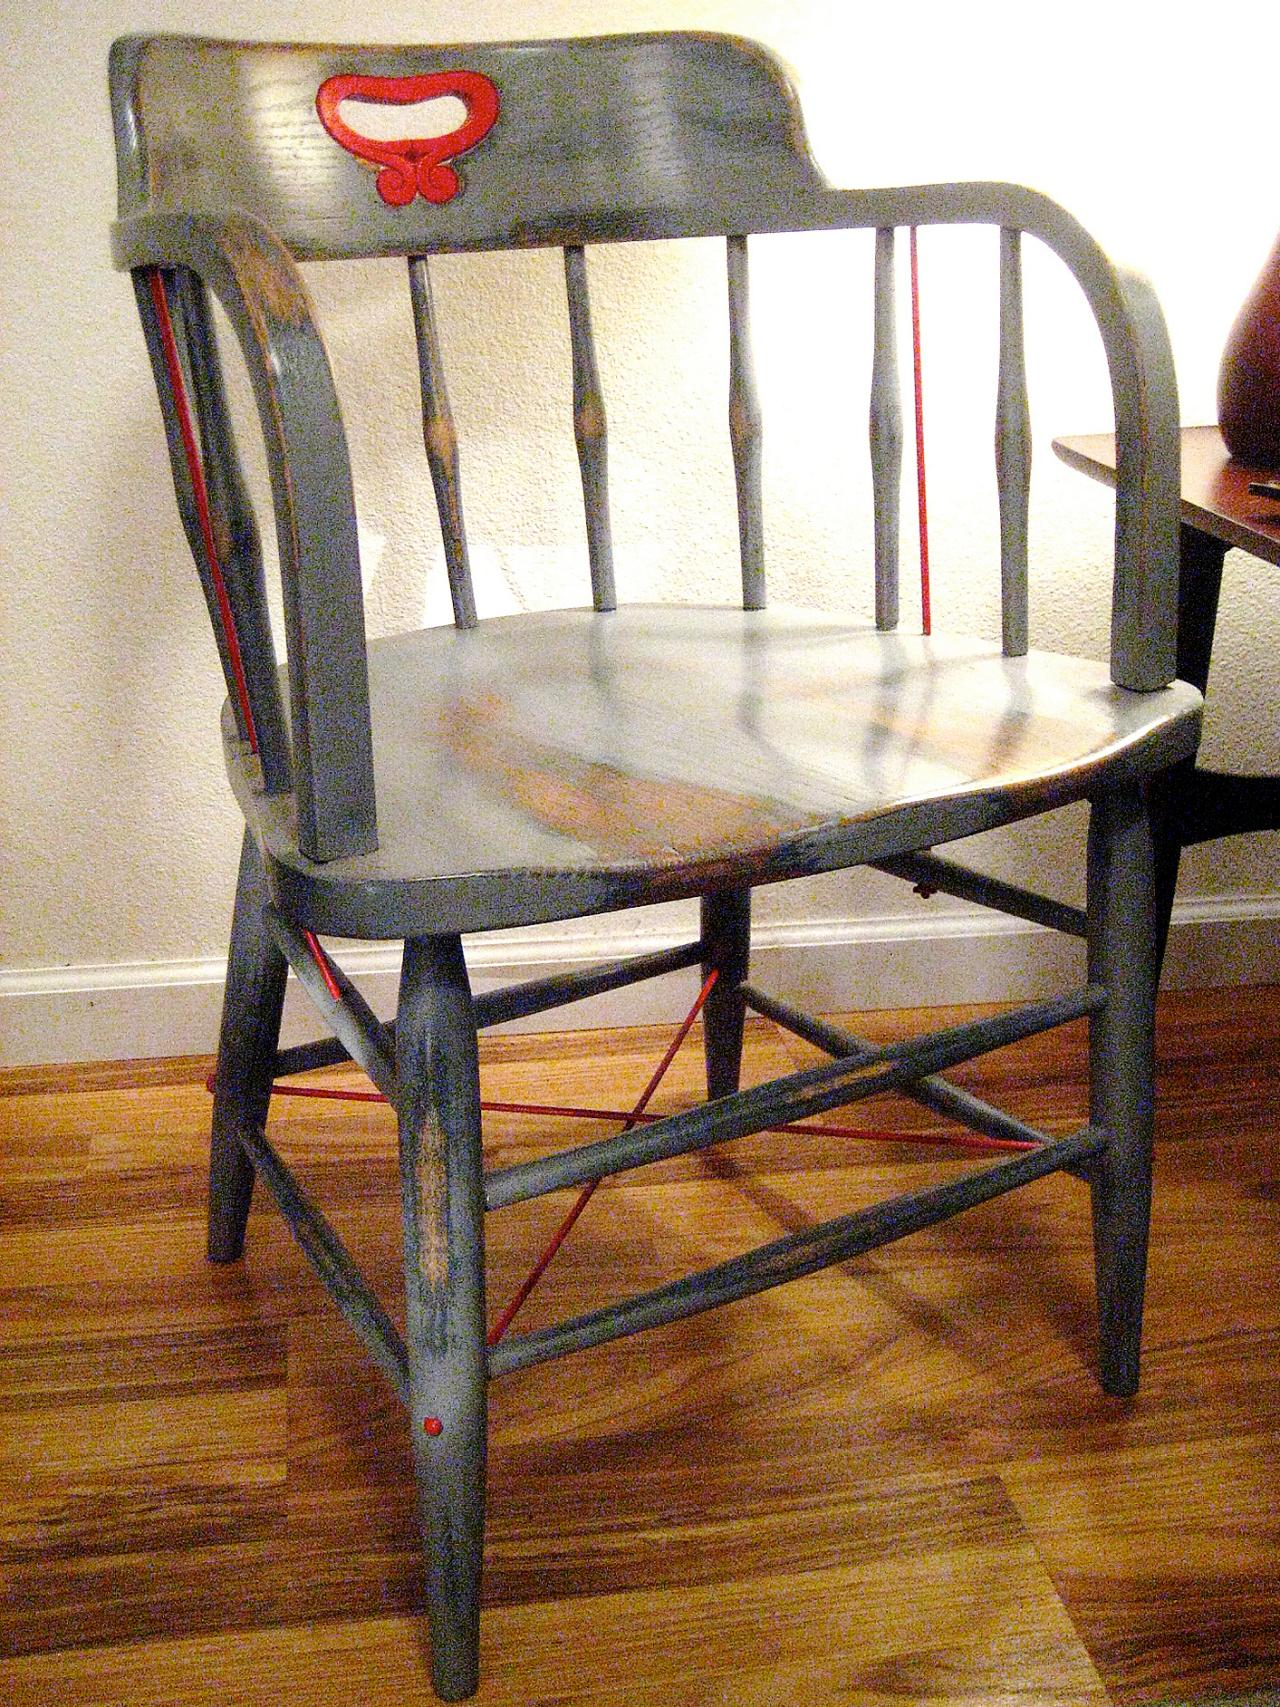 Completed Chair Detail. How to Paint Wood Furniture With an Aged Look   how tos   DIY